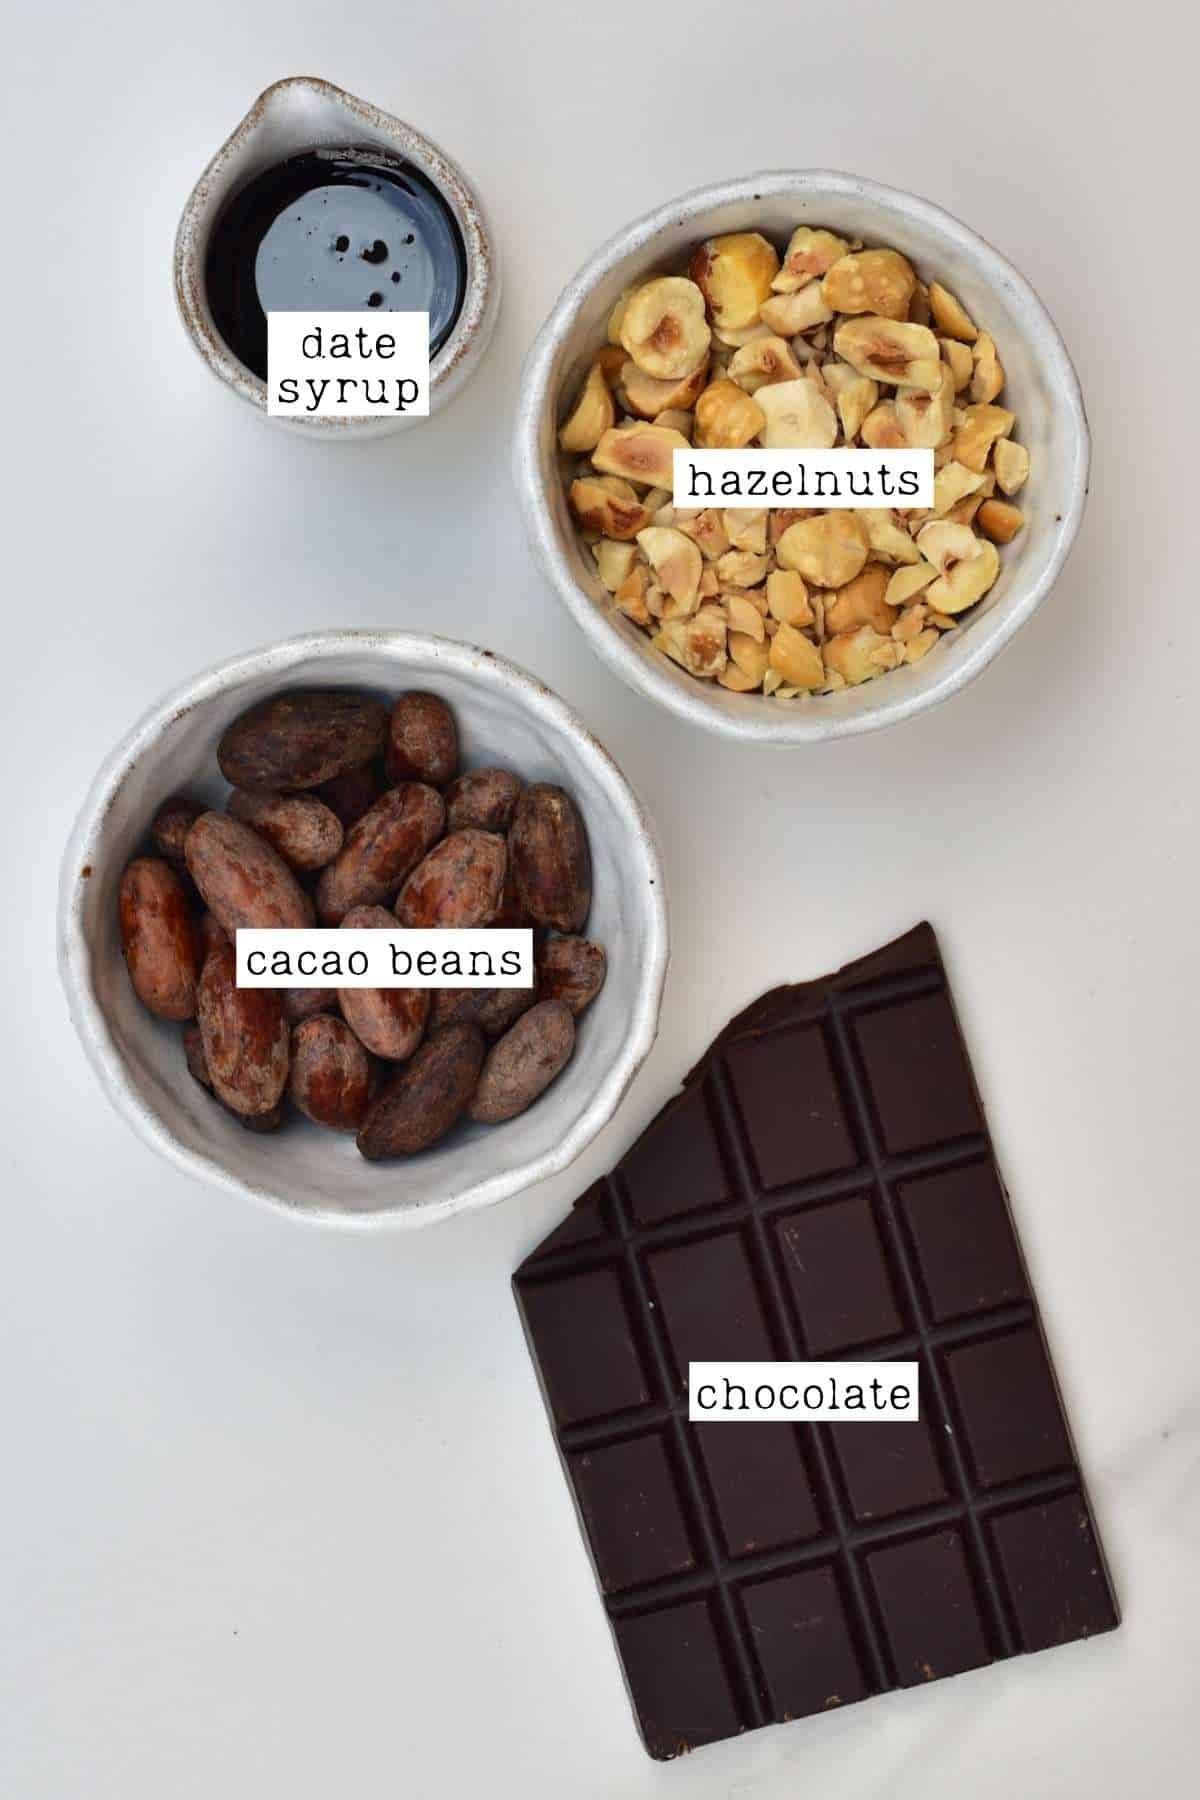 Optional toppings for coffee ice cream